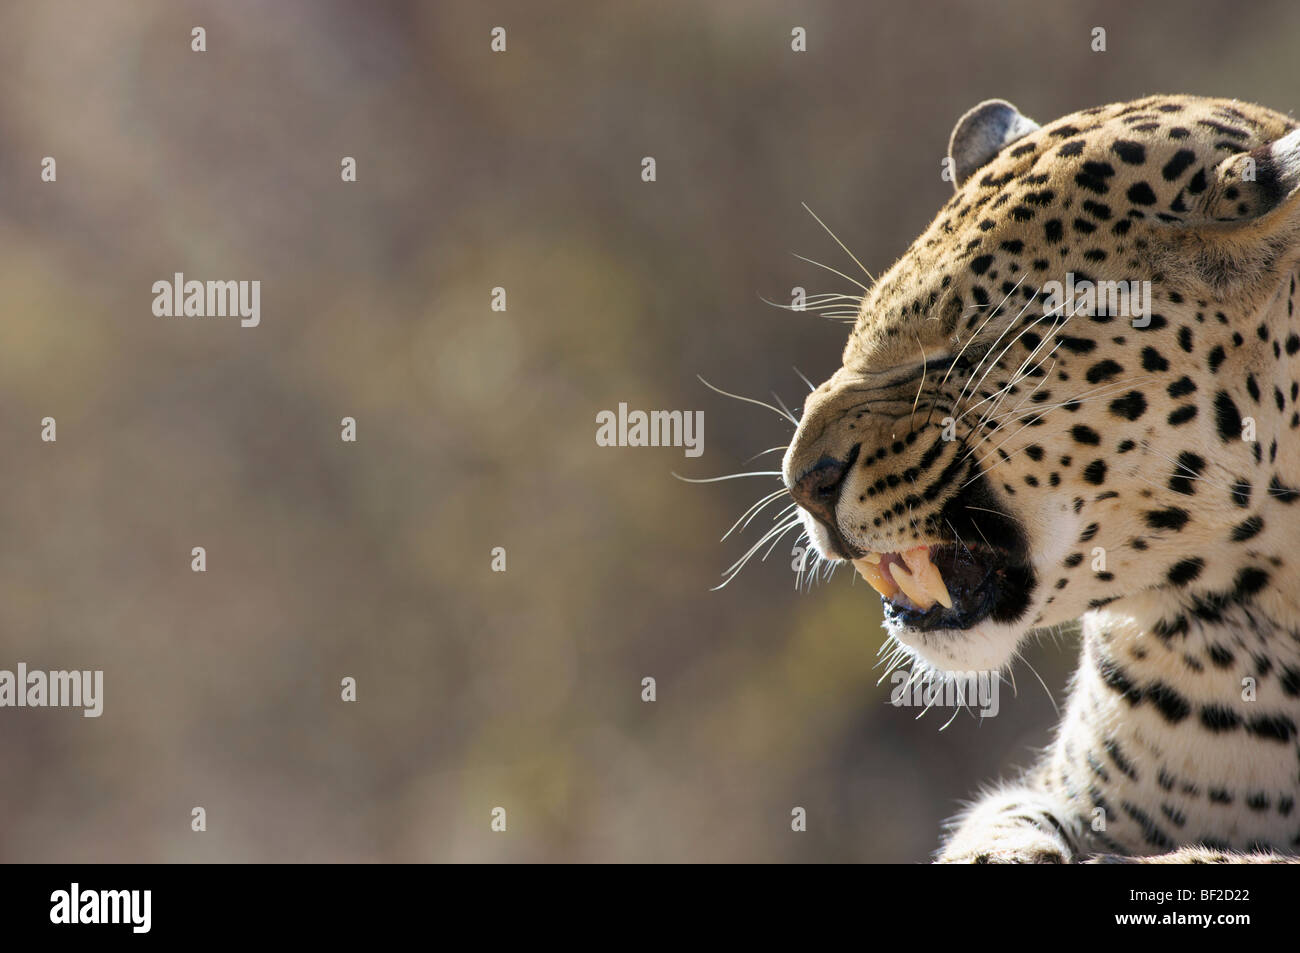 Side view of a Leopard (Panthera Pardus) snarling, Okonjima Lodge and Africat Foundation, Namibia. - Stock Image